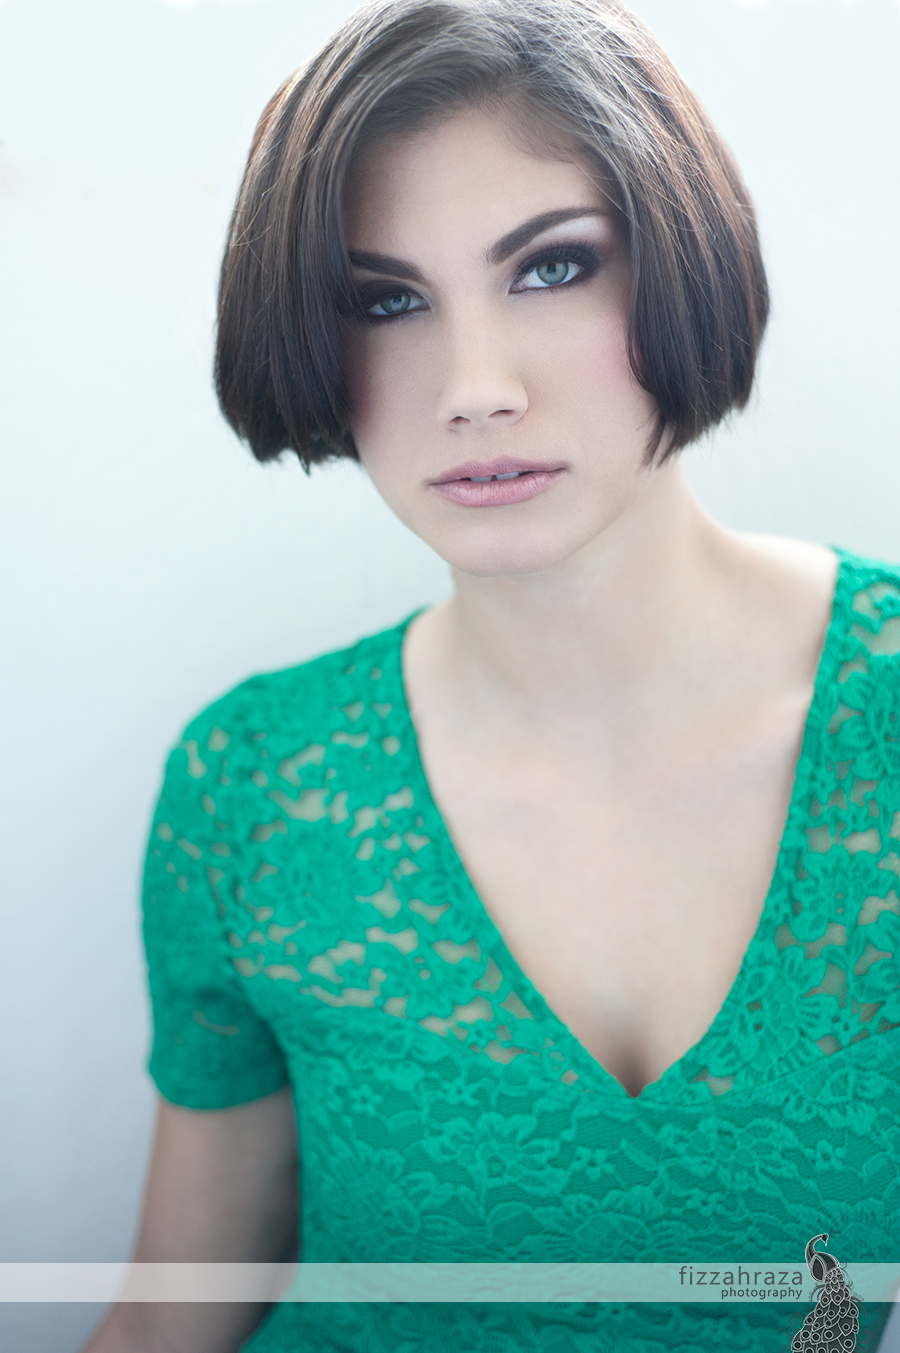 soft natural light beauty photo of woman with short hair and green eyes